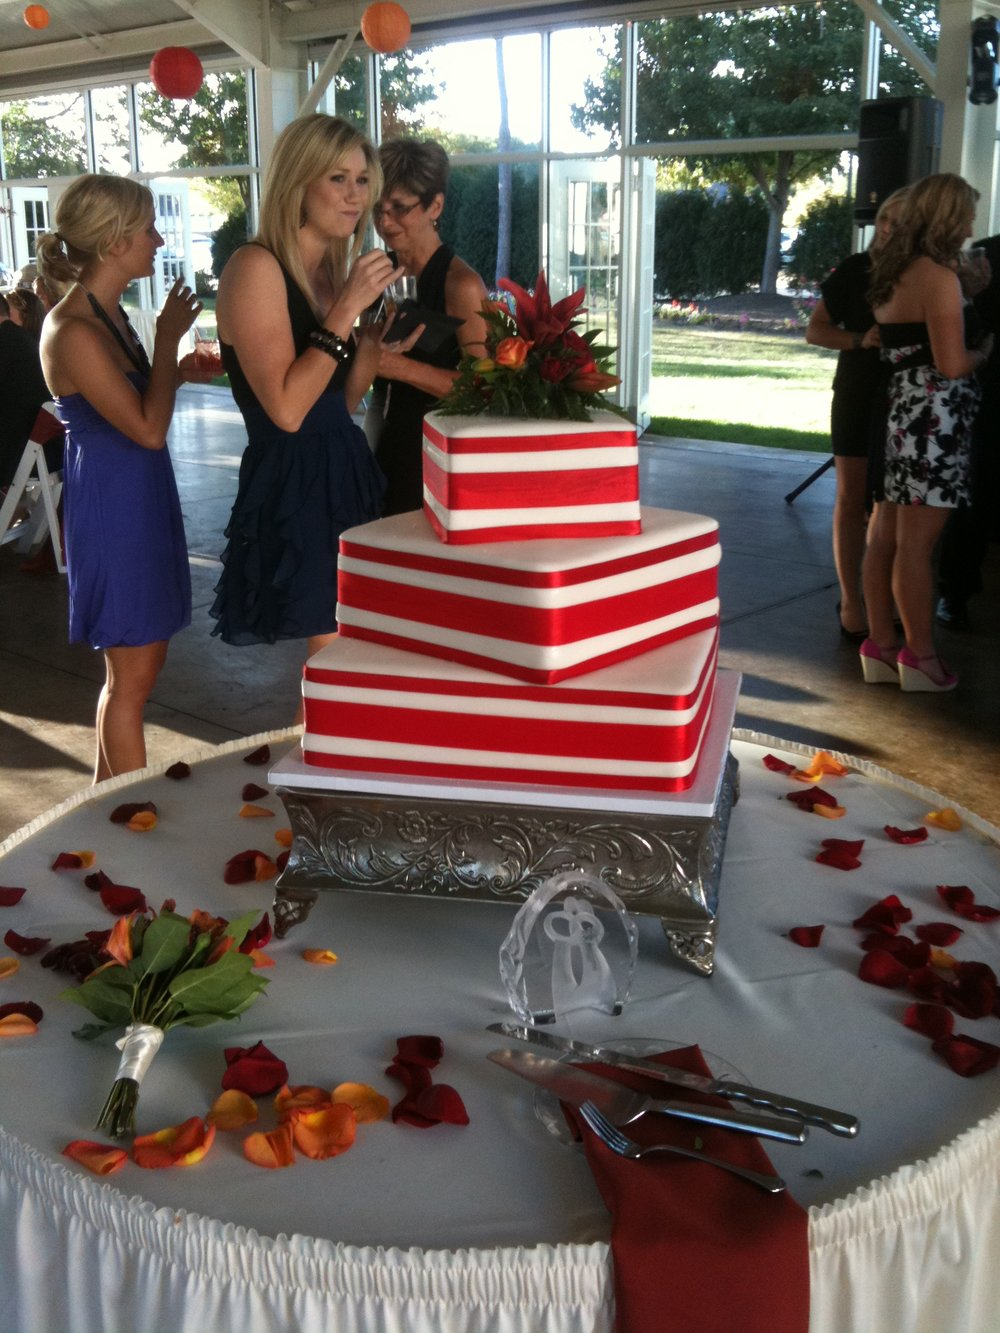 Square Wedding Cake offset with Red & White Ribbon